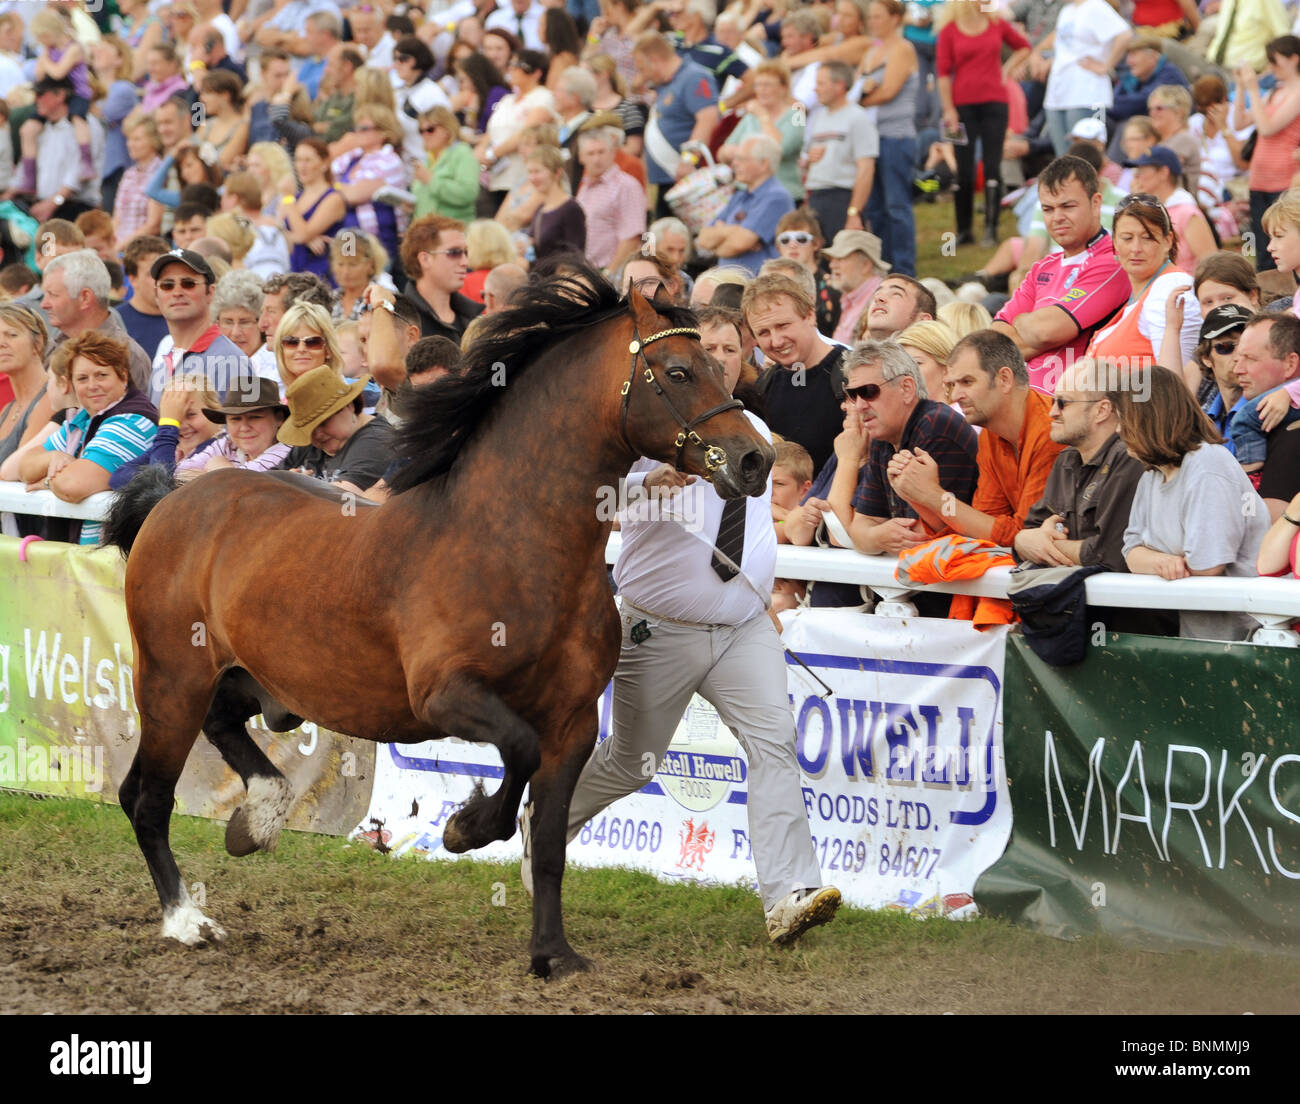 Royal Welsh Show 2010 senior 'Welsh Cob' stallion competition running past excited crowds - Stock Image